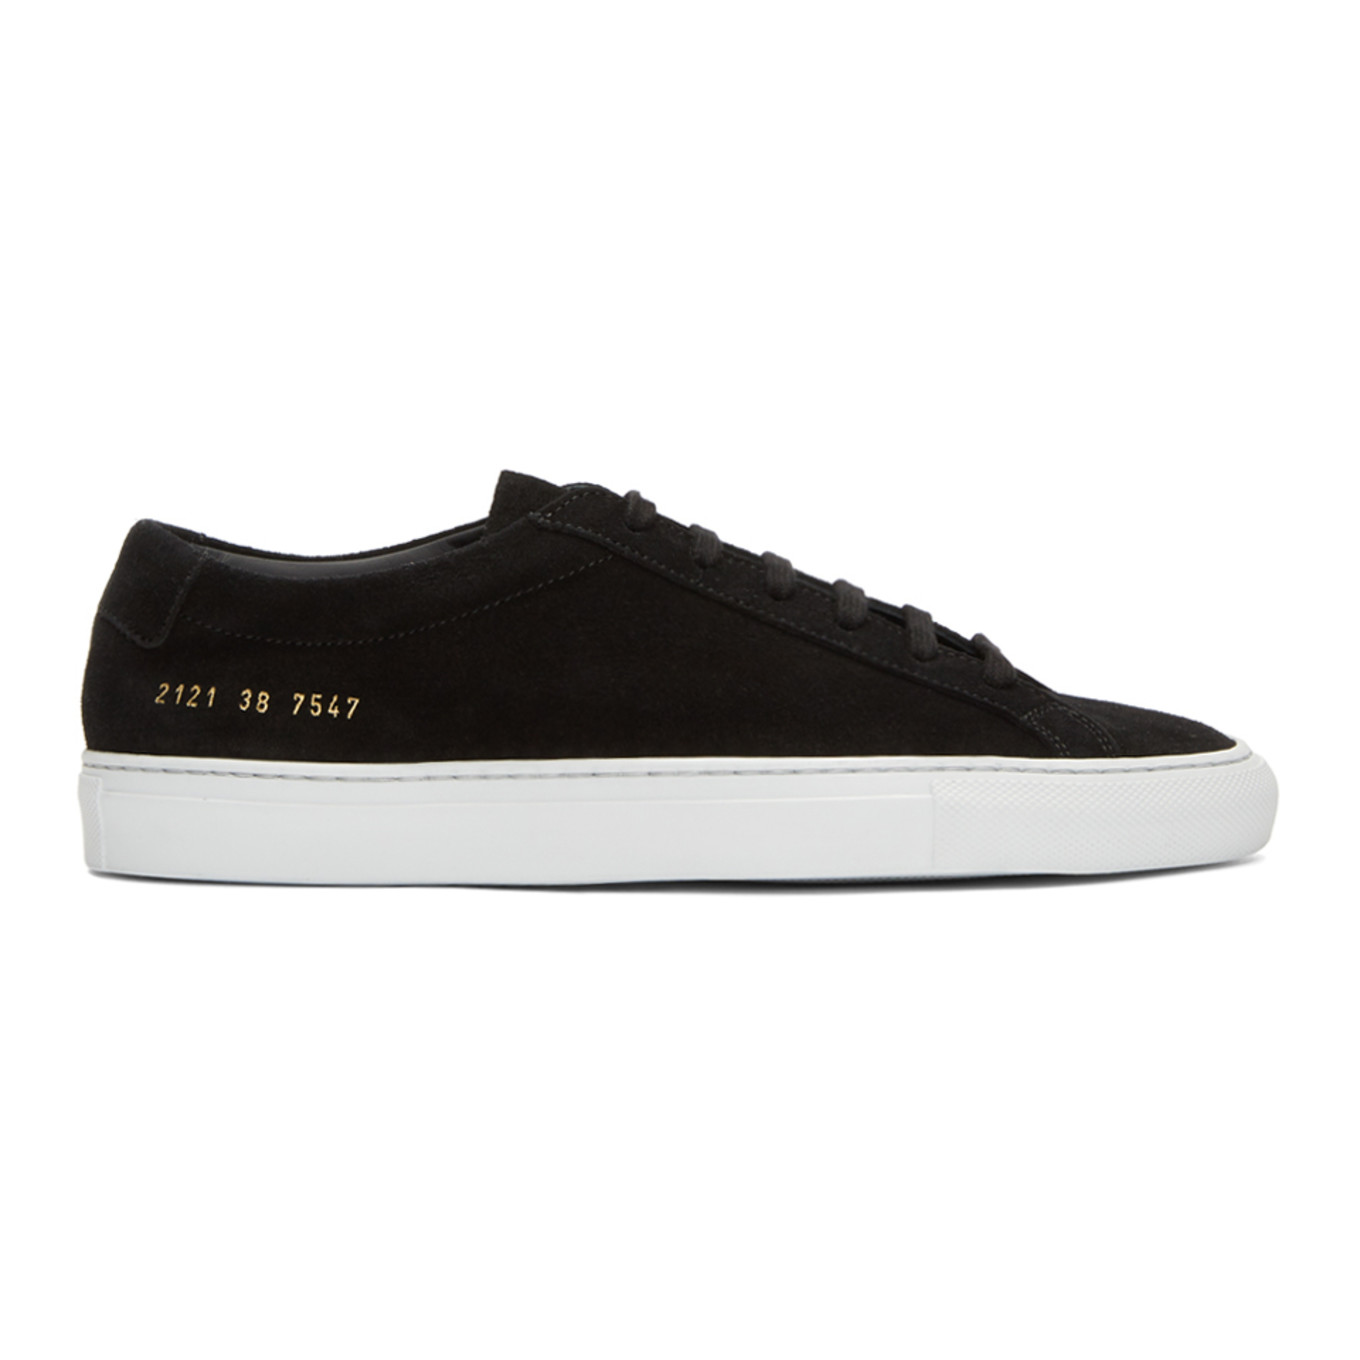 Black & White Suede Original Achilles Low Sneakers by Common Projects